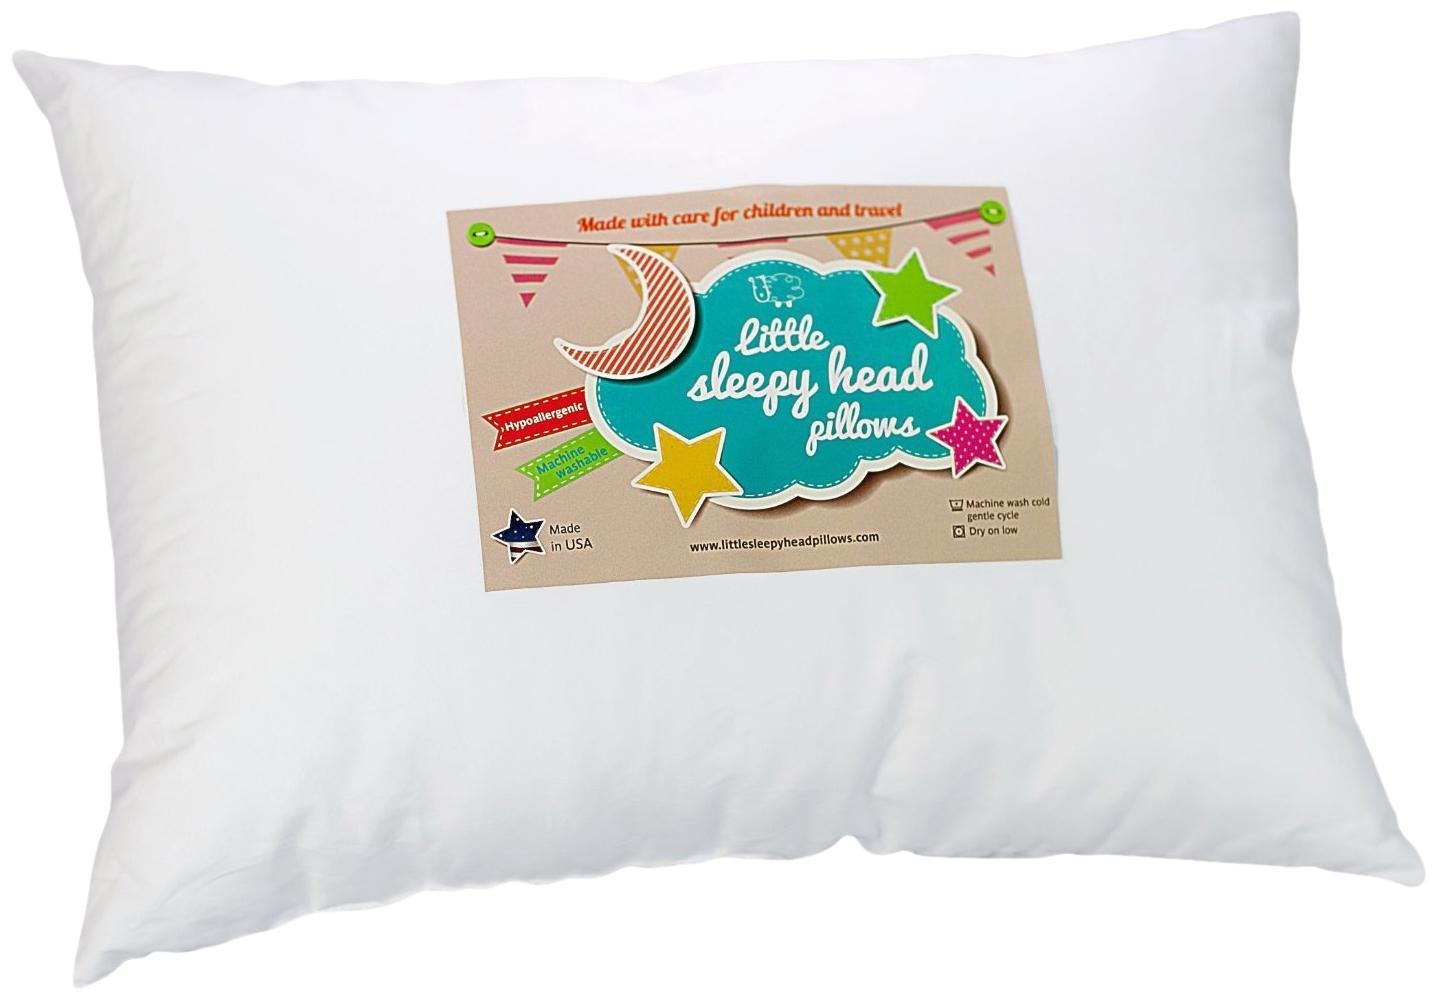 Little Sleepy Head Toddler Pillow, White, 13 x 18, 10 Pack